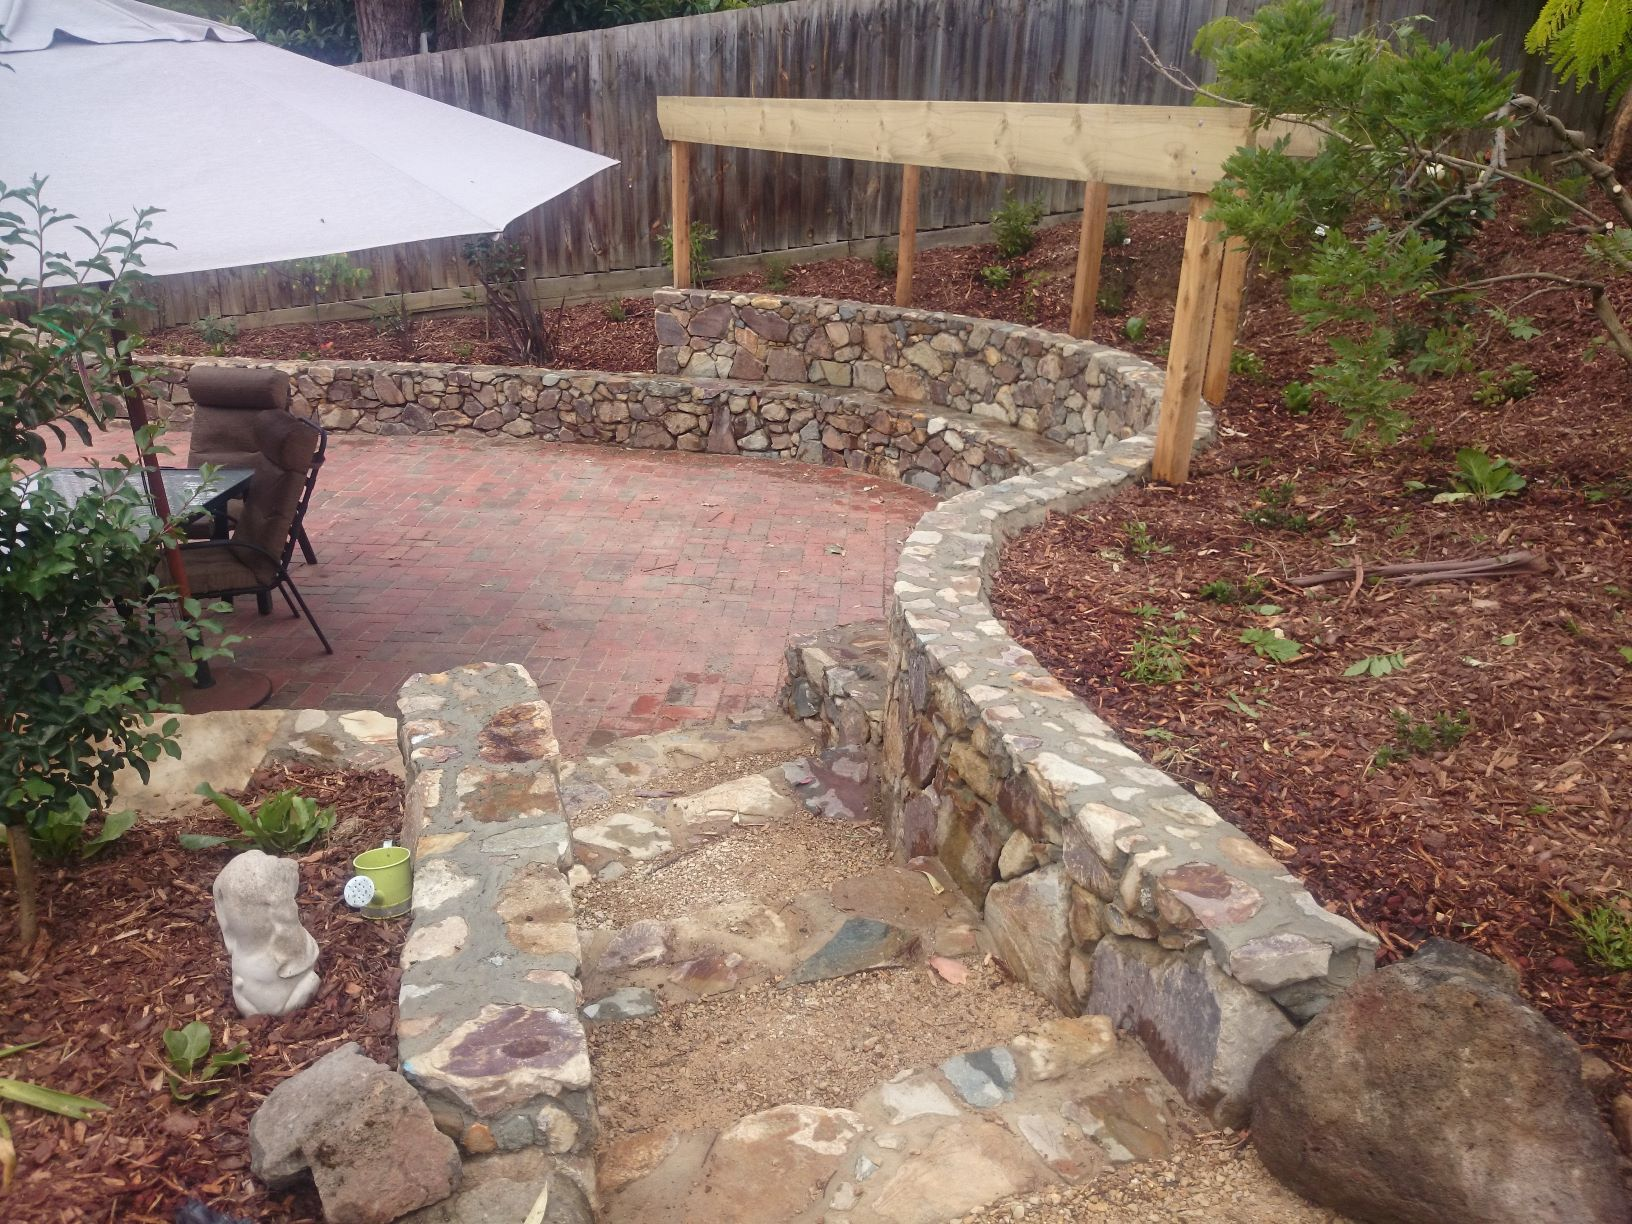 Cold Stream stone wall, Cold Stream stone seat, Cold Stream stone retaining wall, Curved Cold Stream stone walls,Curved retaining walls